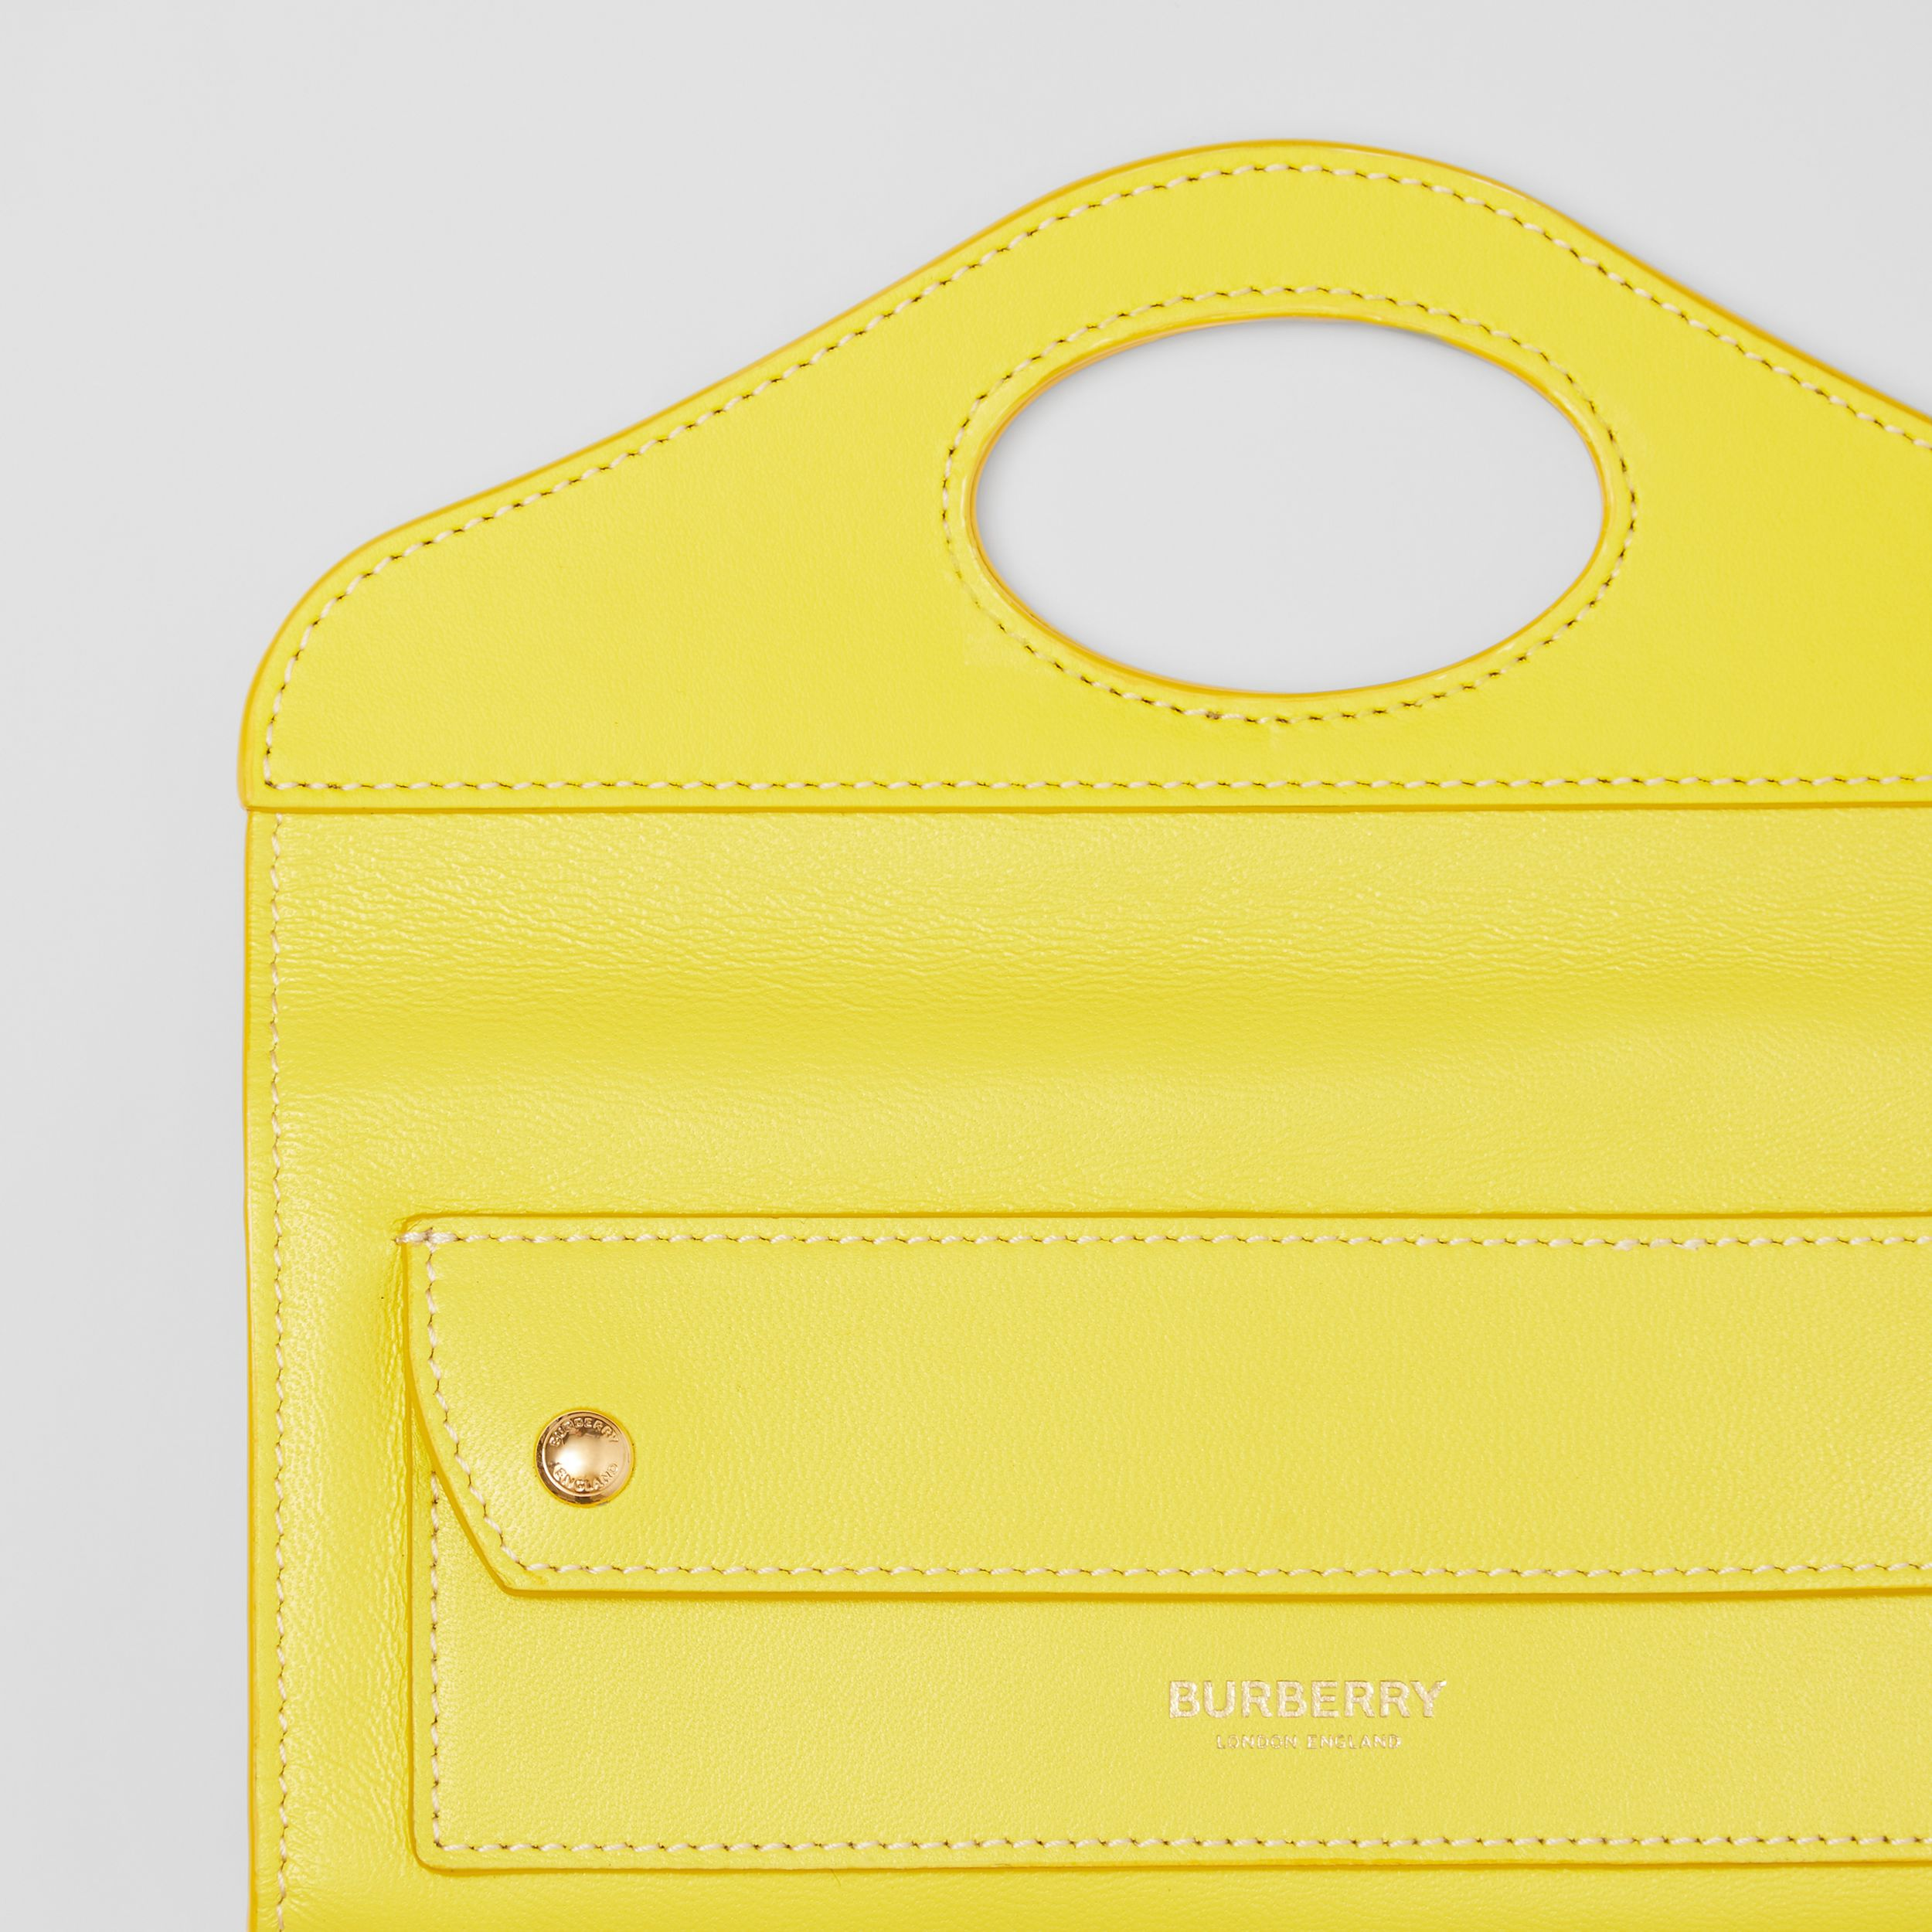 Mini Topstitched Lambskin Pocket Clutch in Marigold Yellow - Women | Burberry Hong Kong S.A.R. - 2